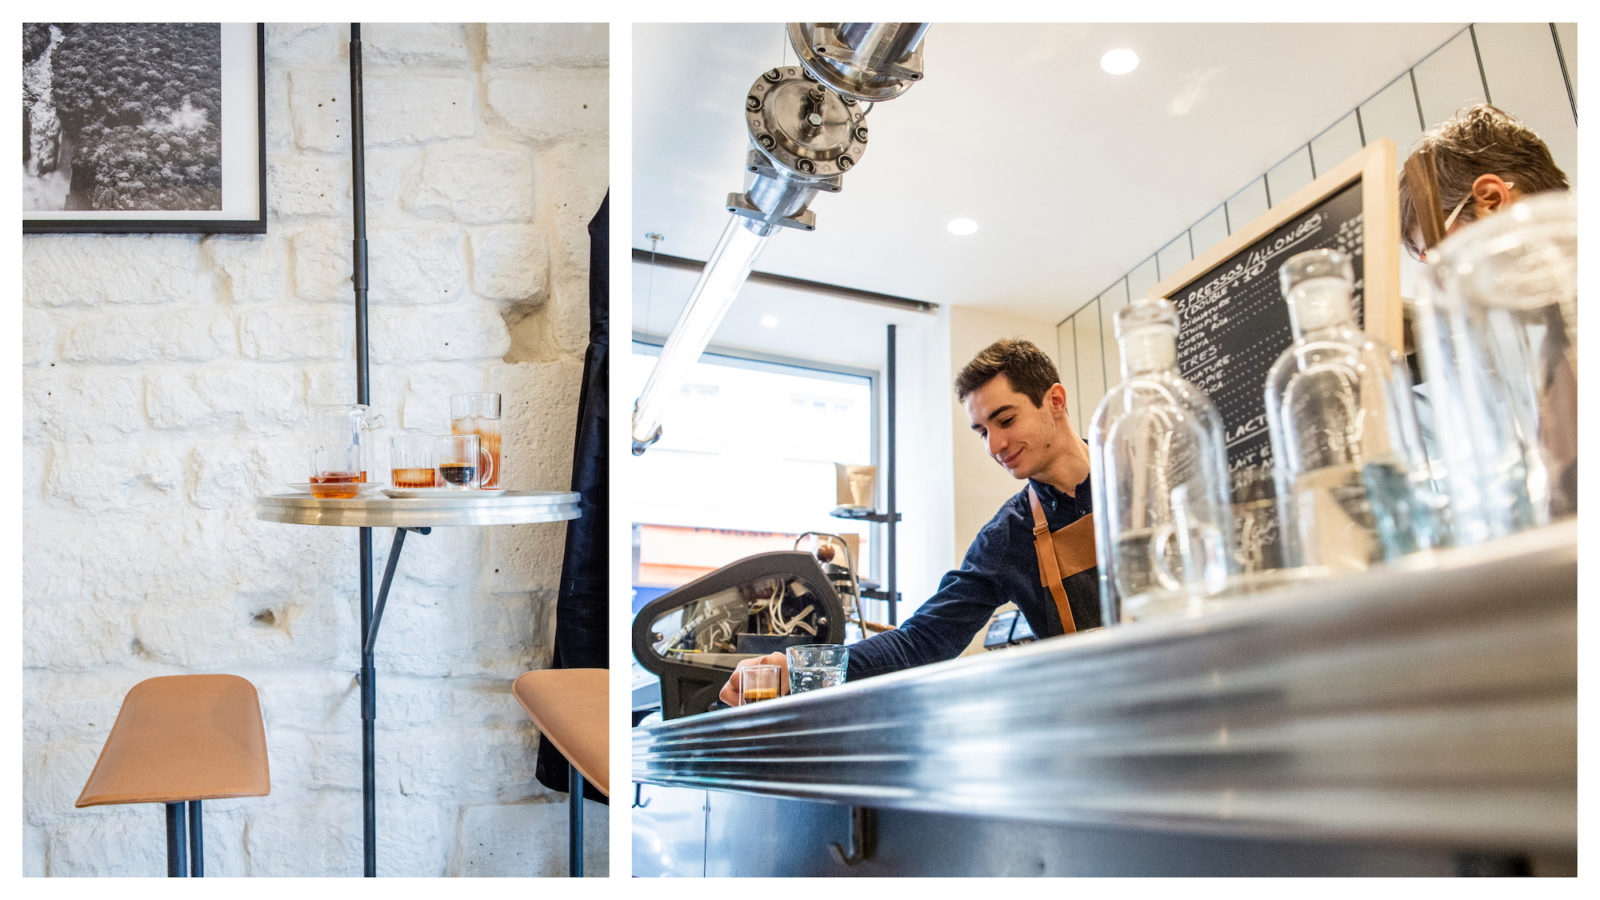 Alain Ducasse's Le Café is our go-to coffee shop on rue du Cherche-Midi with stylish interiors (left) and craft coffee you can enjoy at the counter (right).